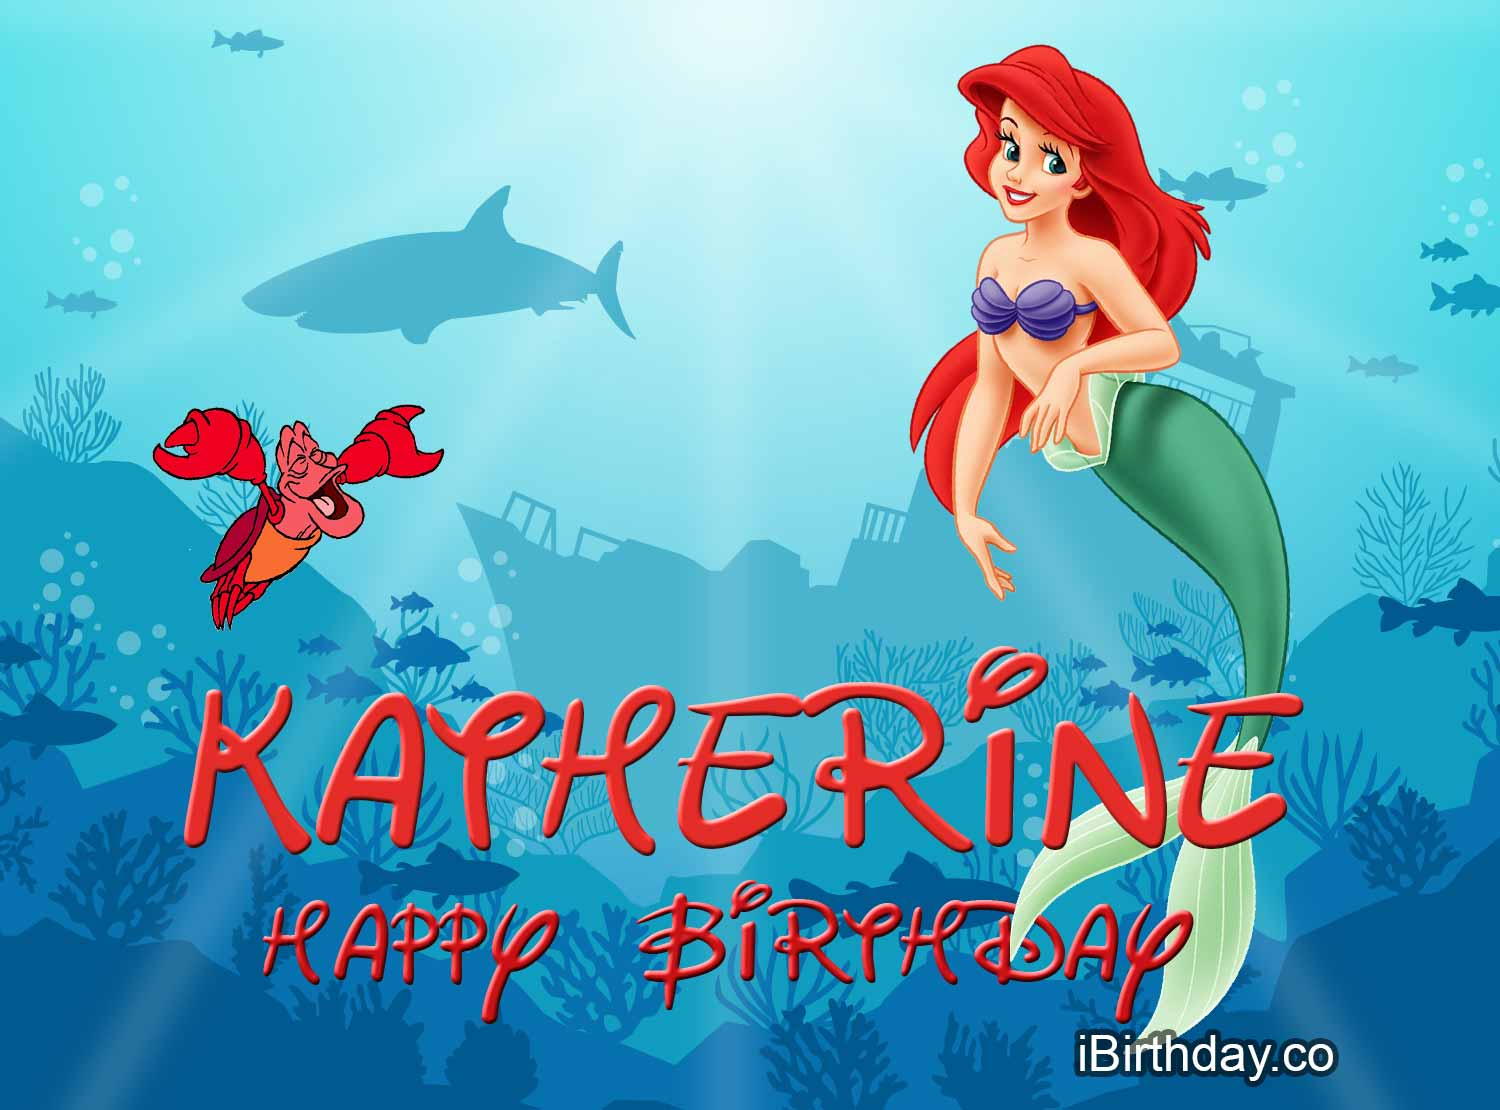 Katherine Little Mermaid Birthday Wish